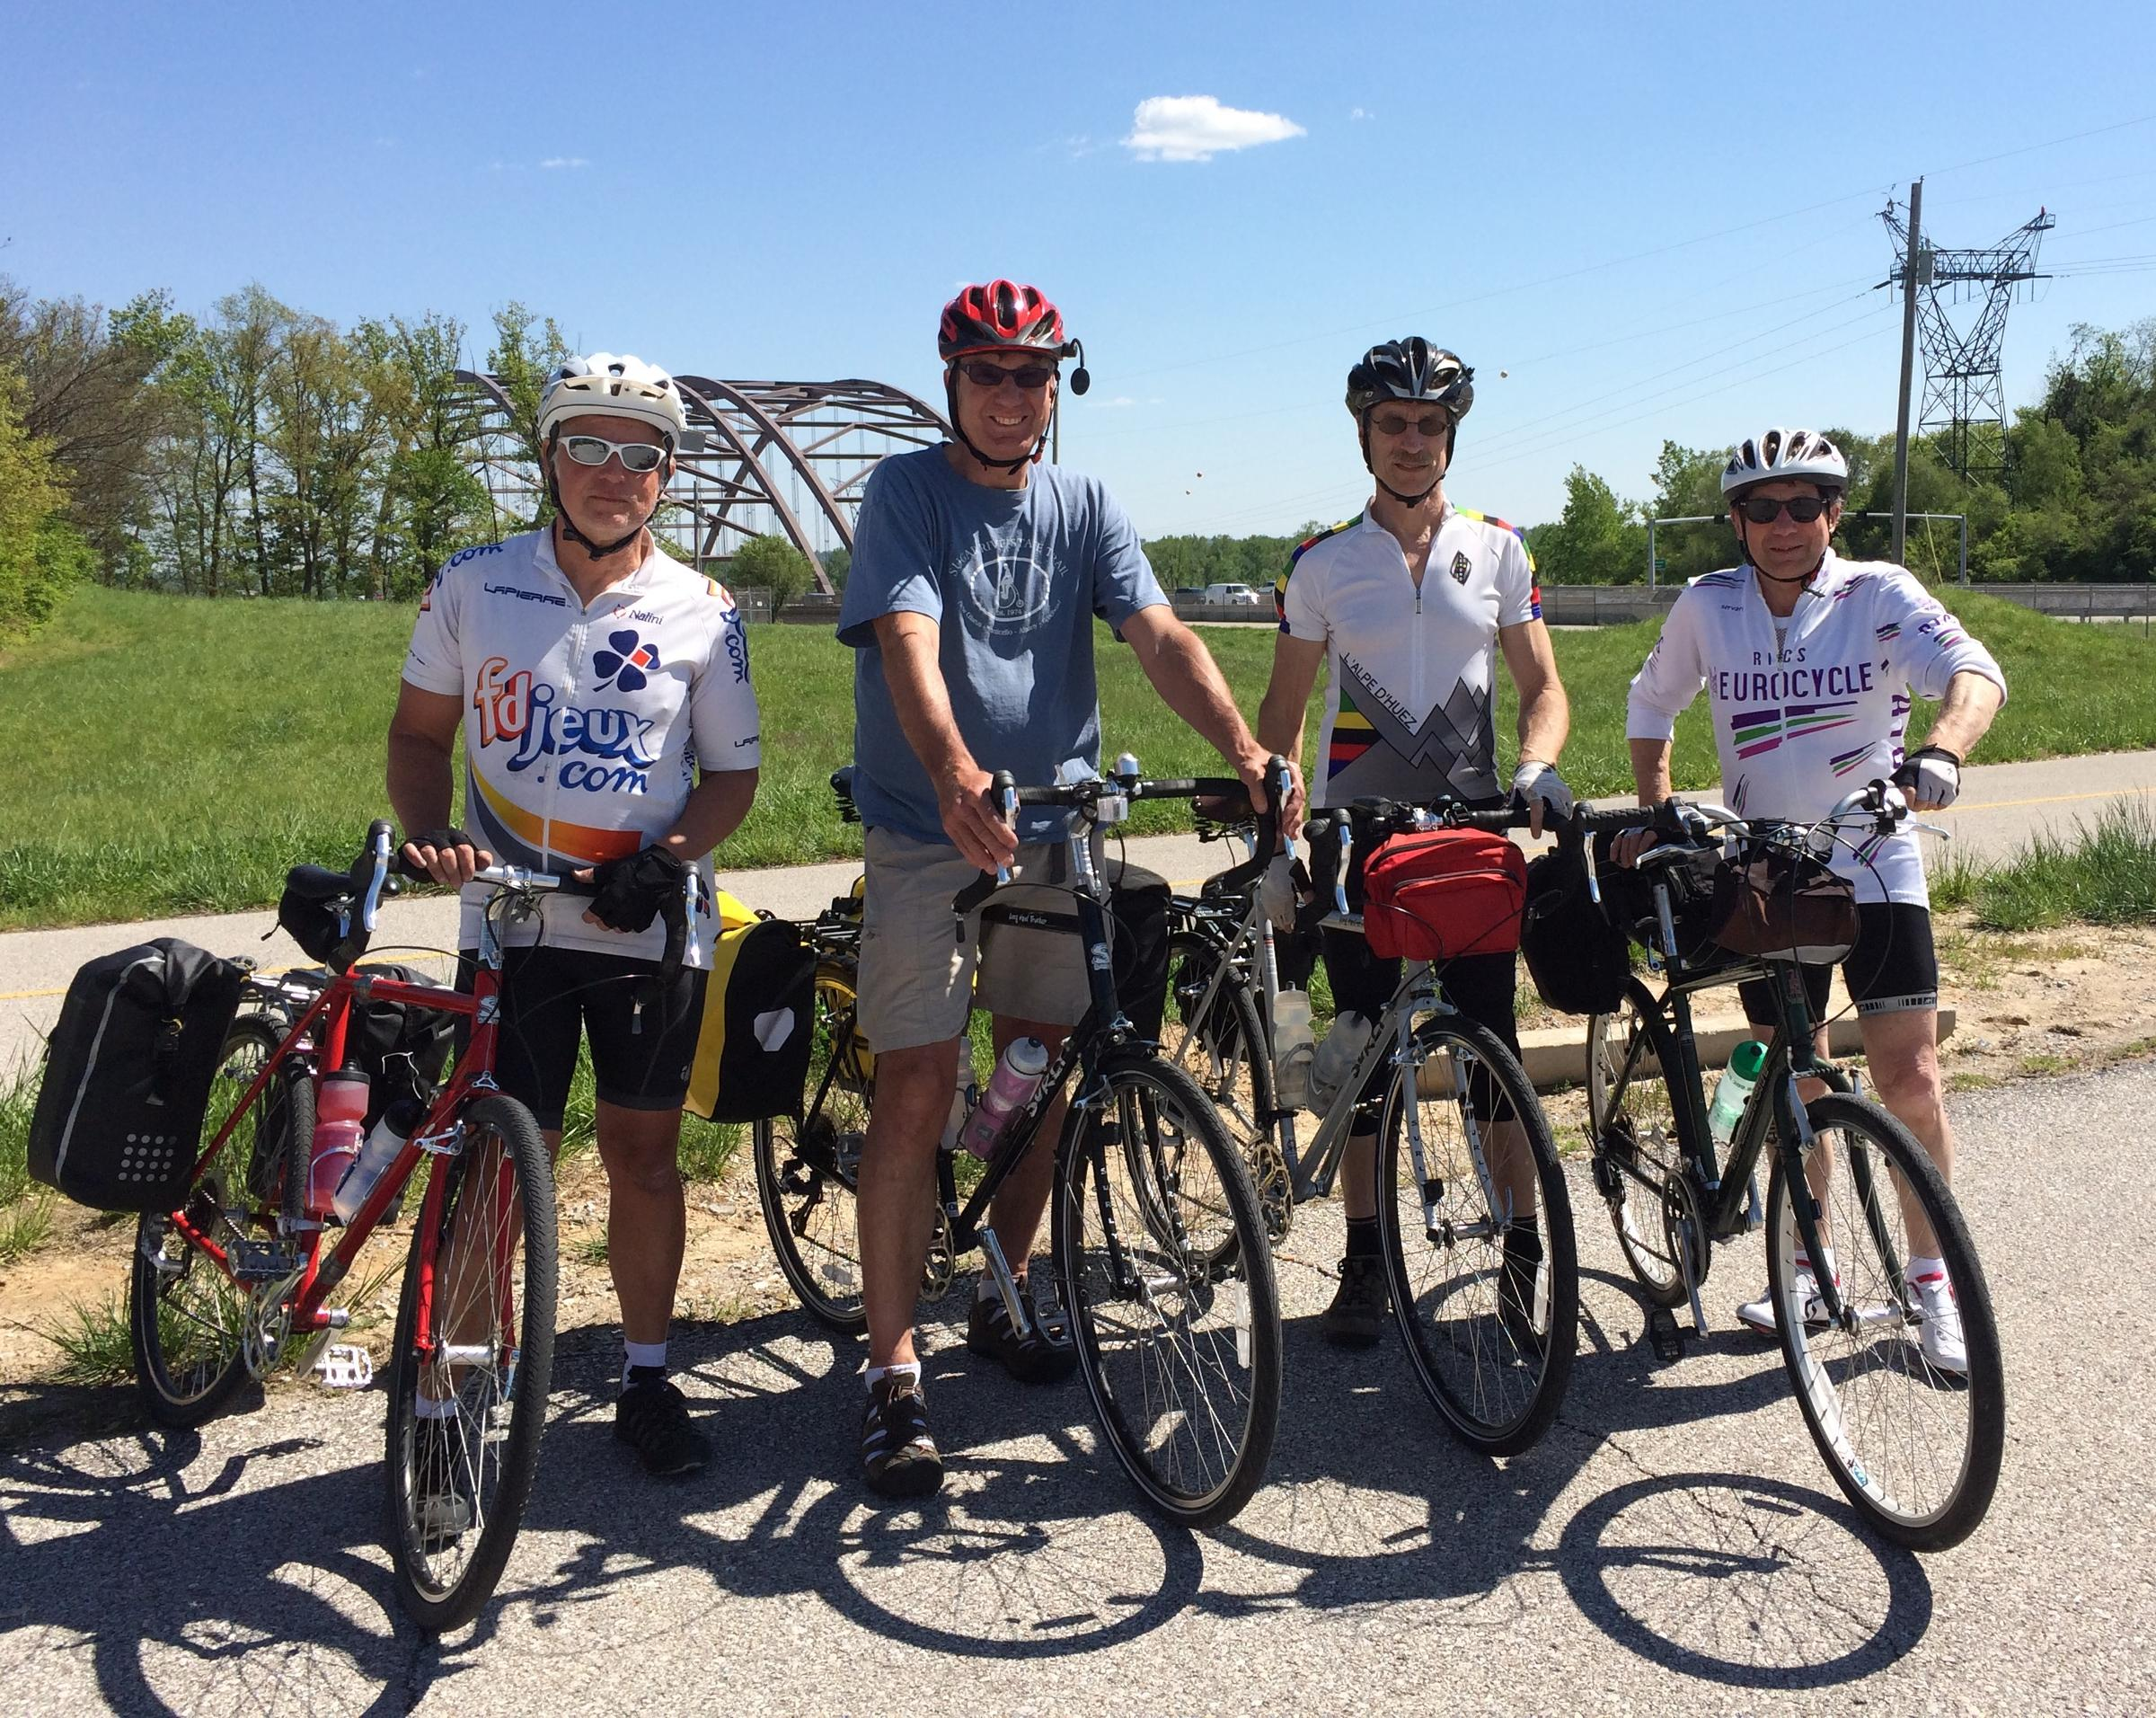 Extensive Missouri Bike Trail Plan Creates Both Hope And Lawsuits